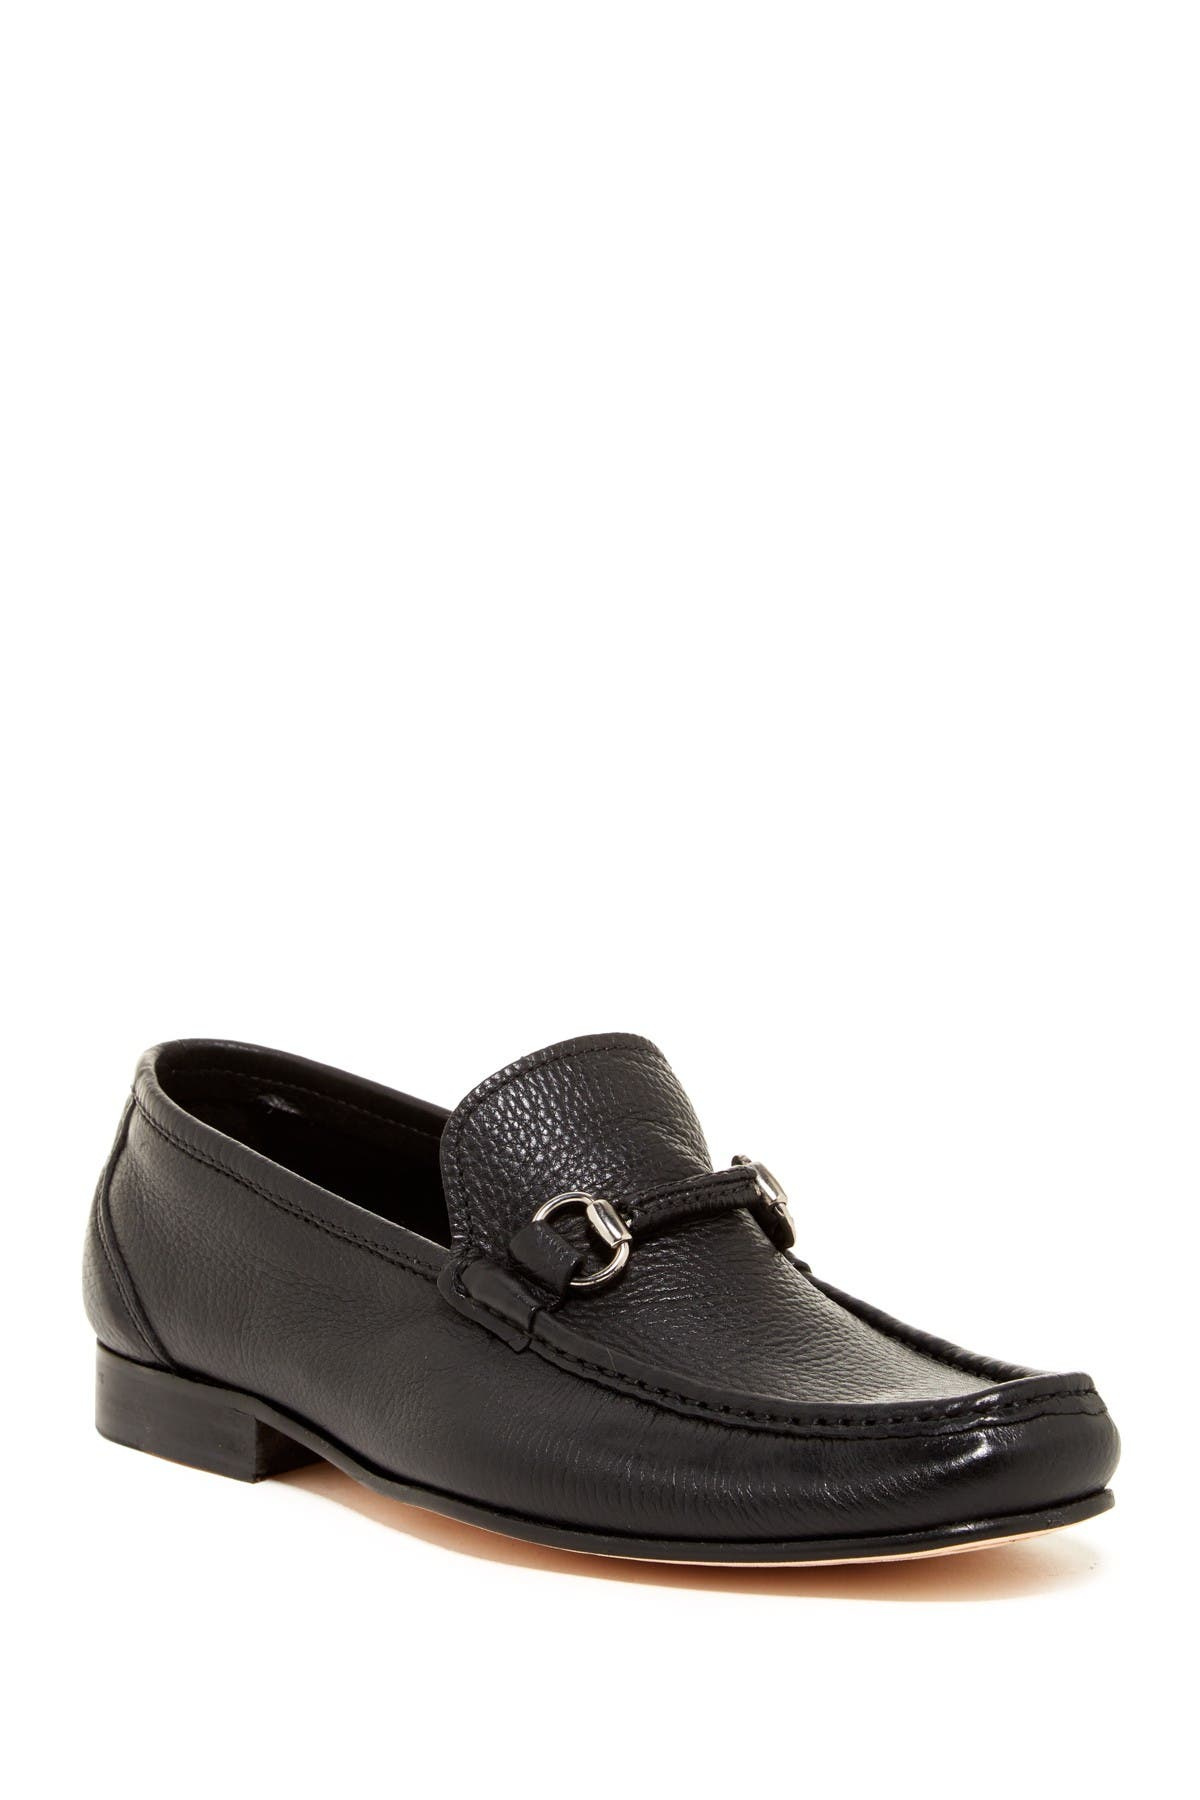 Image of Sandro Moscoloni Sorrento Bit Buckle Loafer